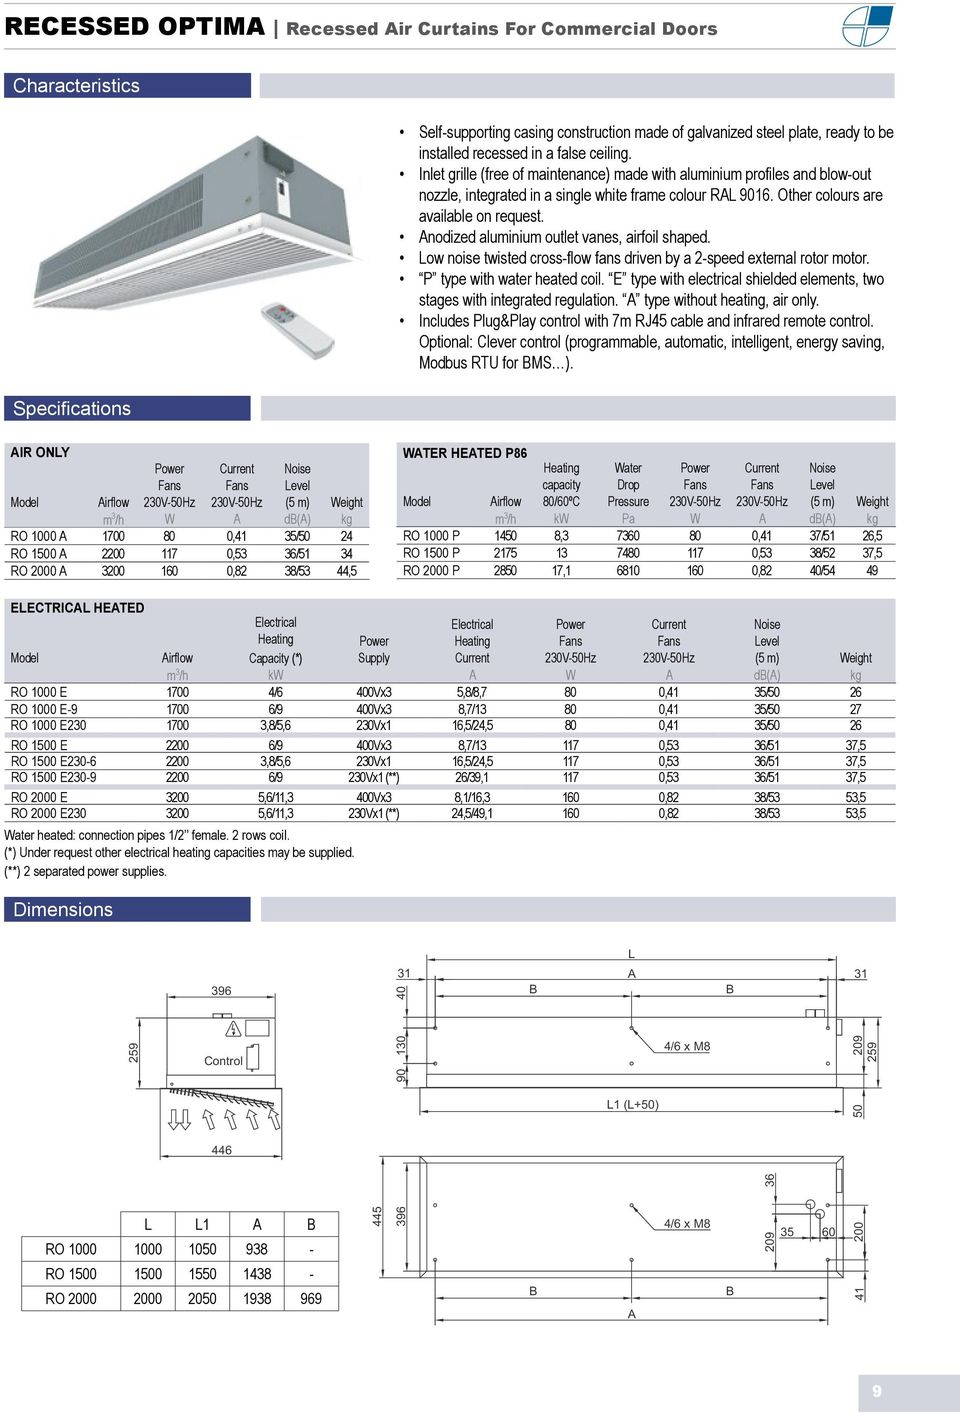 Airtecnics The Air Curtain Specialist Rosenberg Group Pdf Evo 2050 Wiring Diagram Anodized Aluminium Outlet Vanes Airfoil Shaped Low Noise Twisted Cross Flow Fans Driven